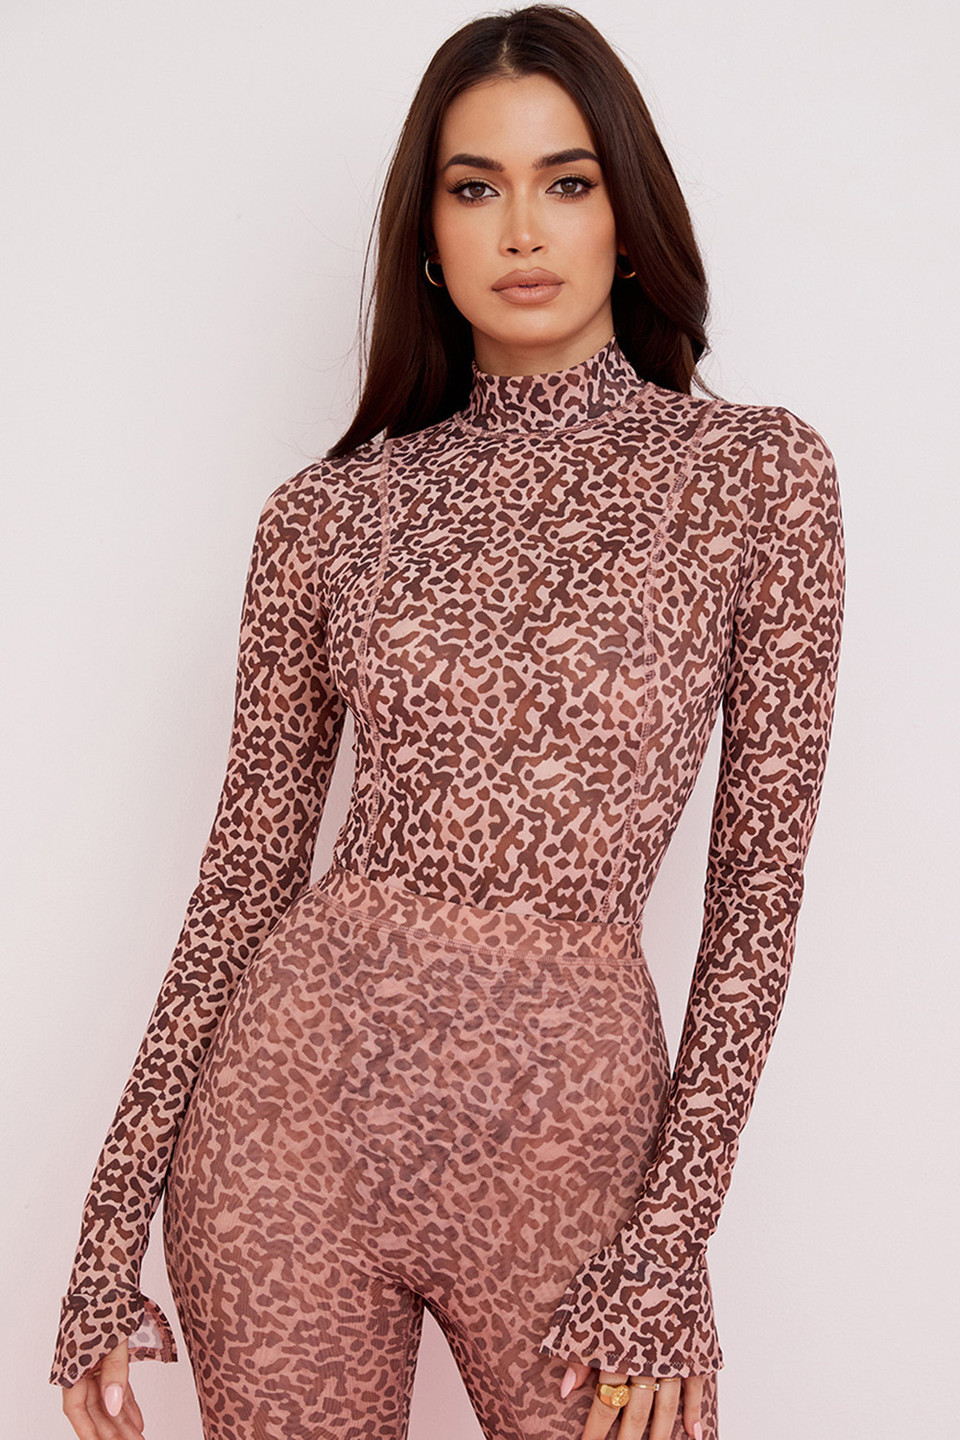 Eleanor Animal Print Mesh Bodysuit